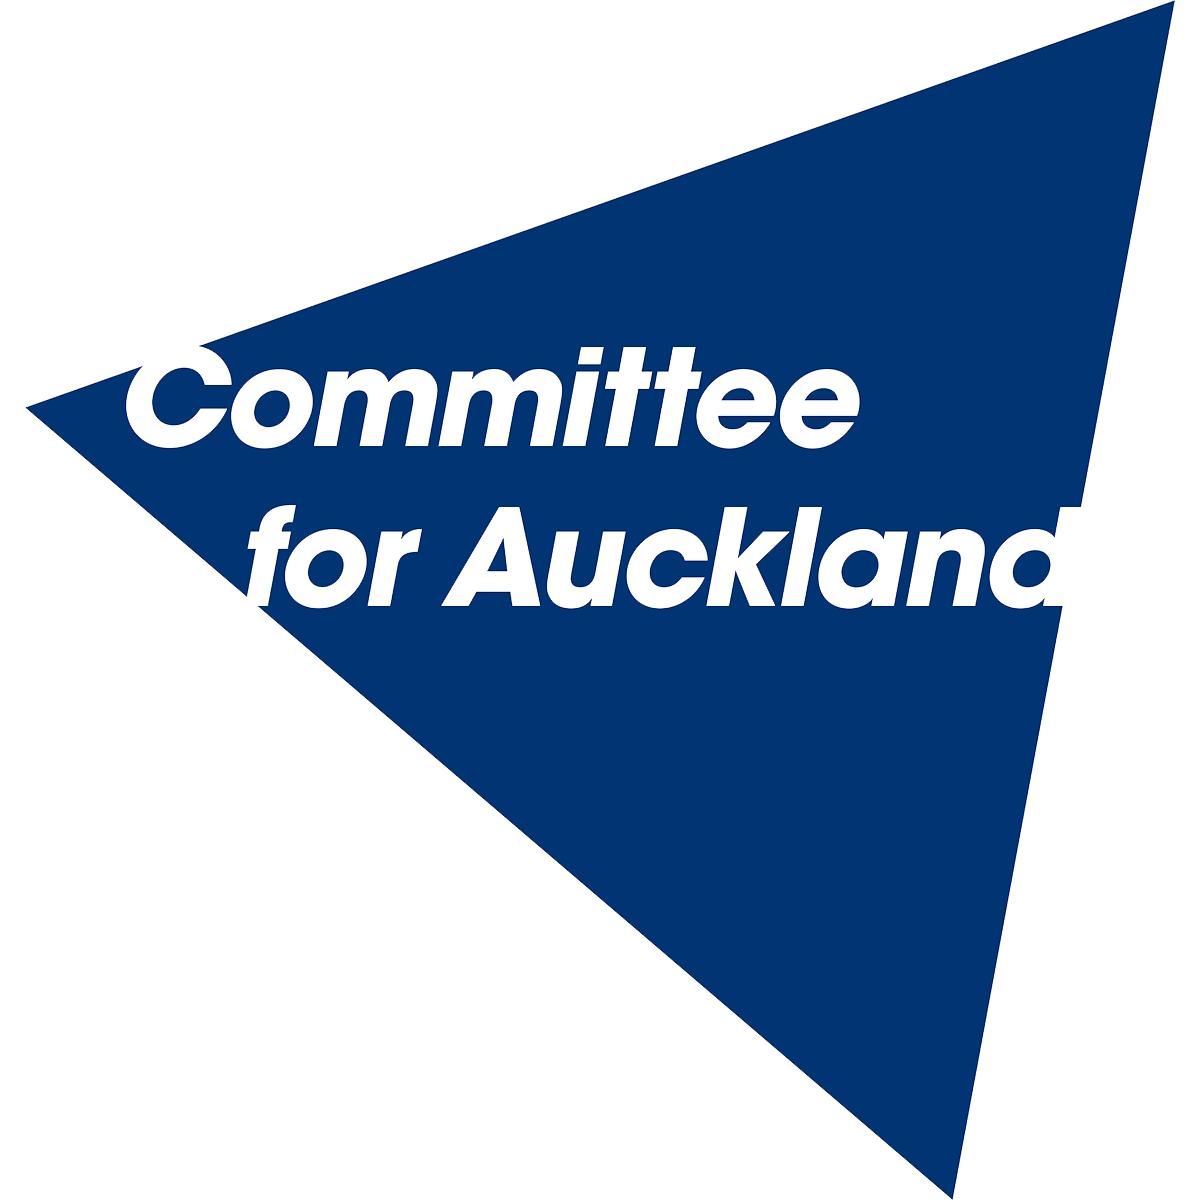 Committee for Auckland